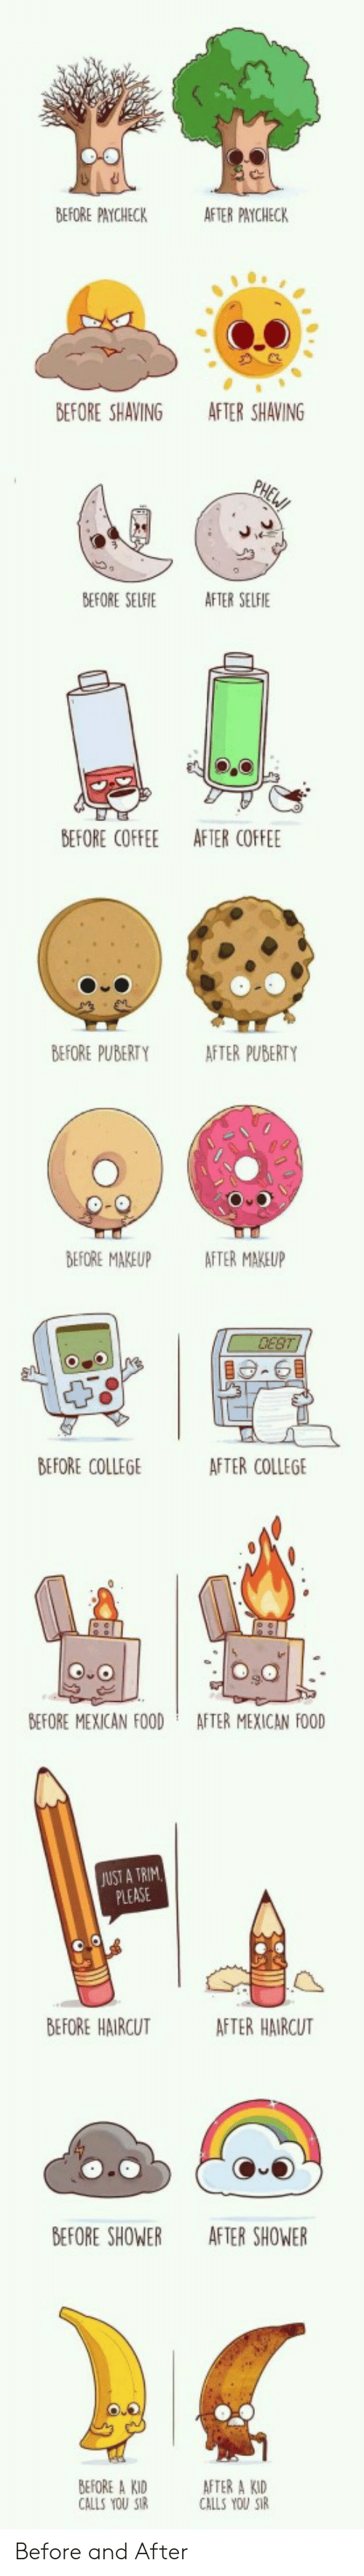 College, Food, and Haircut: BEFORE PAYCHECK  AFTER PAYCHECK  BEFORE SHAVING  AFTER SHAVING  BEFORE SELFIE  AFTER SELFIE  BEFORE COFFEE  AFTER COFFEE  BEFORE PUBERTY  AFTER PUBERTY  BEFORE MAKEUP AFTER MAKEUP  BEFORE COLLEGE  AFTER COLLEGE  BEFORE MEXICAN FOOD  AFTER MEXICAN FOOD  UST A TRIM  PLEASE  BEFORE HAIRCUT  AFTER HAIRCUT  BEFORE SHOWER  AFTER SHOWER  BEFORE A KID  CALLS YOU S  AFTER A KID  CALLS YOU SI Before and After